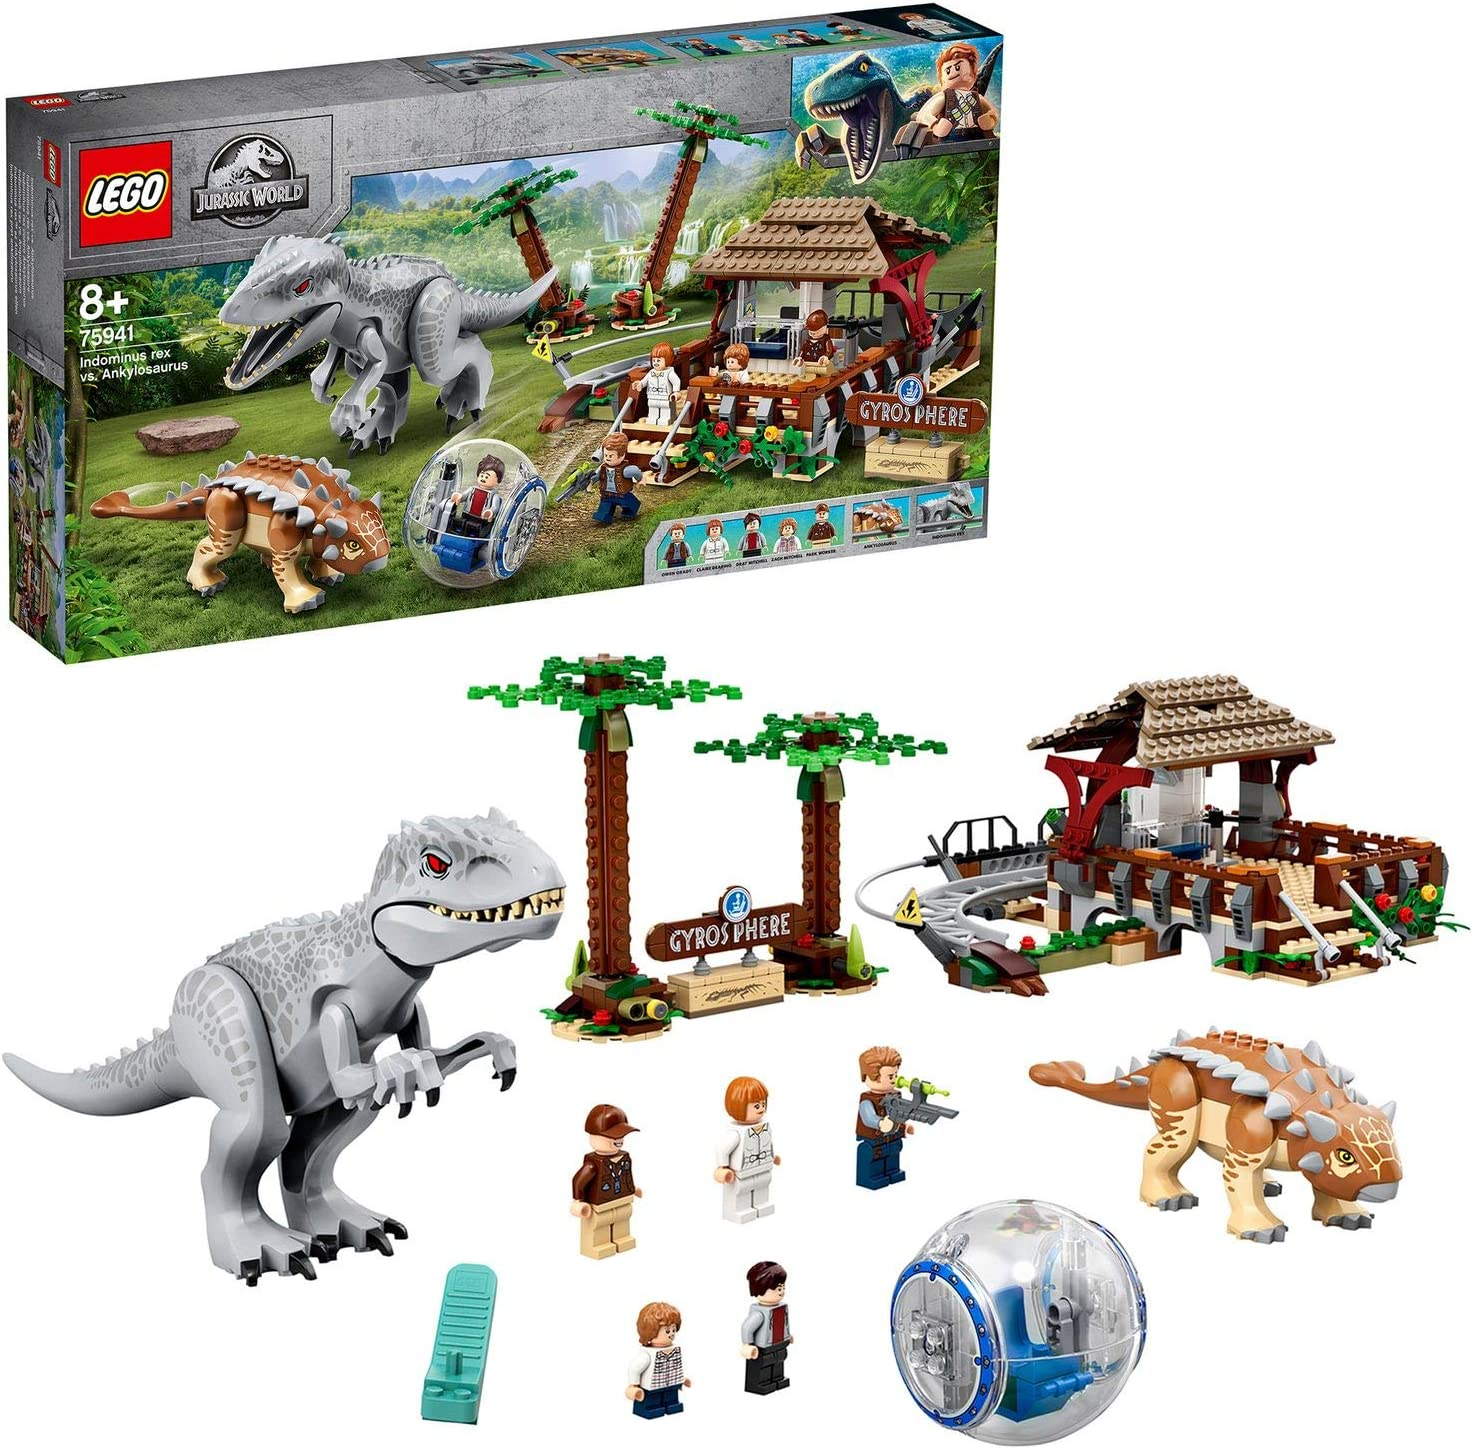 Jurassic World Indominus Rex Vs Ankylosaurus Set De Dinosaurios Con Girosfera Multicolor Lego Es 75941 Amazon Es Juguetes Y Juegos There's a dinosaur for every age with exciting lego® jurassic world™ play sets featuring cool vehicles, heroic characters, iconic buildings, laboratories, scientific equipment and more. jurassic world indominus rex vs ankylosaurus set de dinosaurios con girosfera multicolor lego es 75941